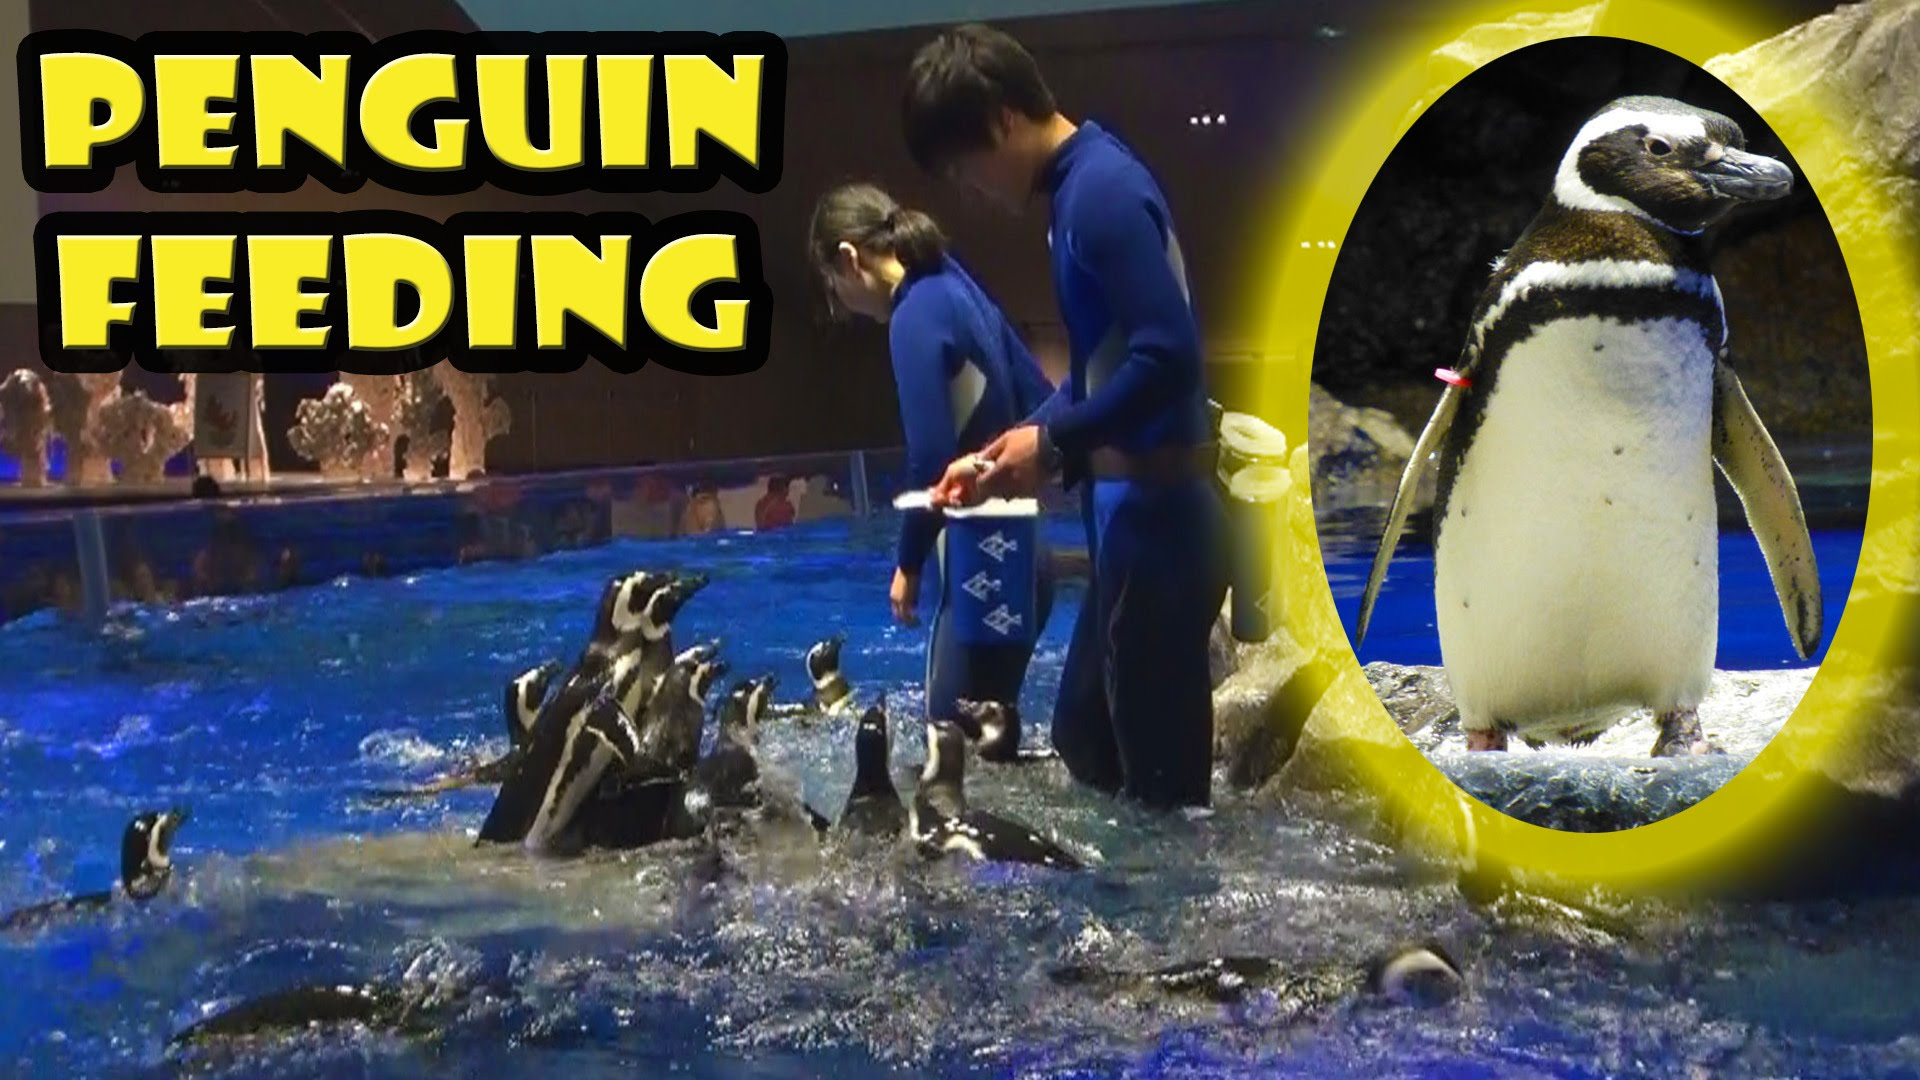 Penguin Feeding at Sumida Aquarium Tokyo Skytee - Yellow Productions Travel V...